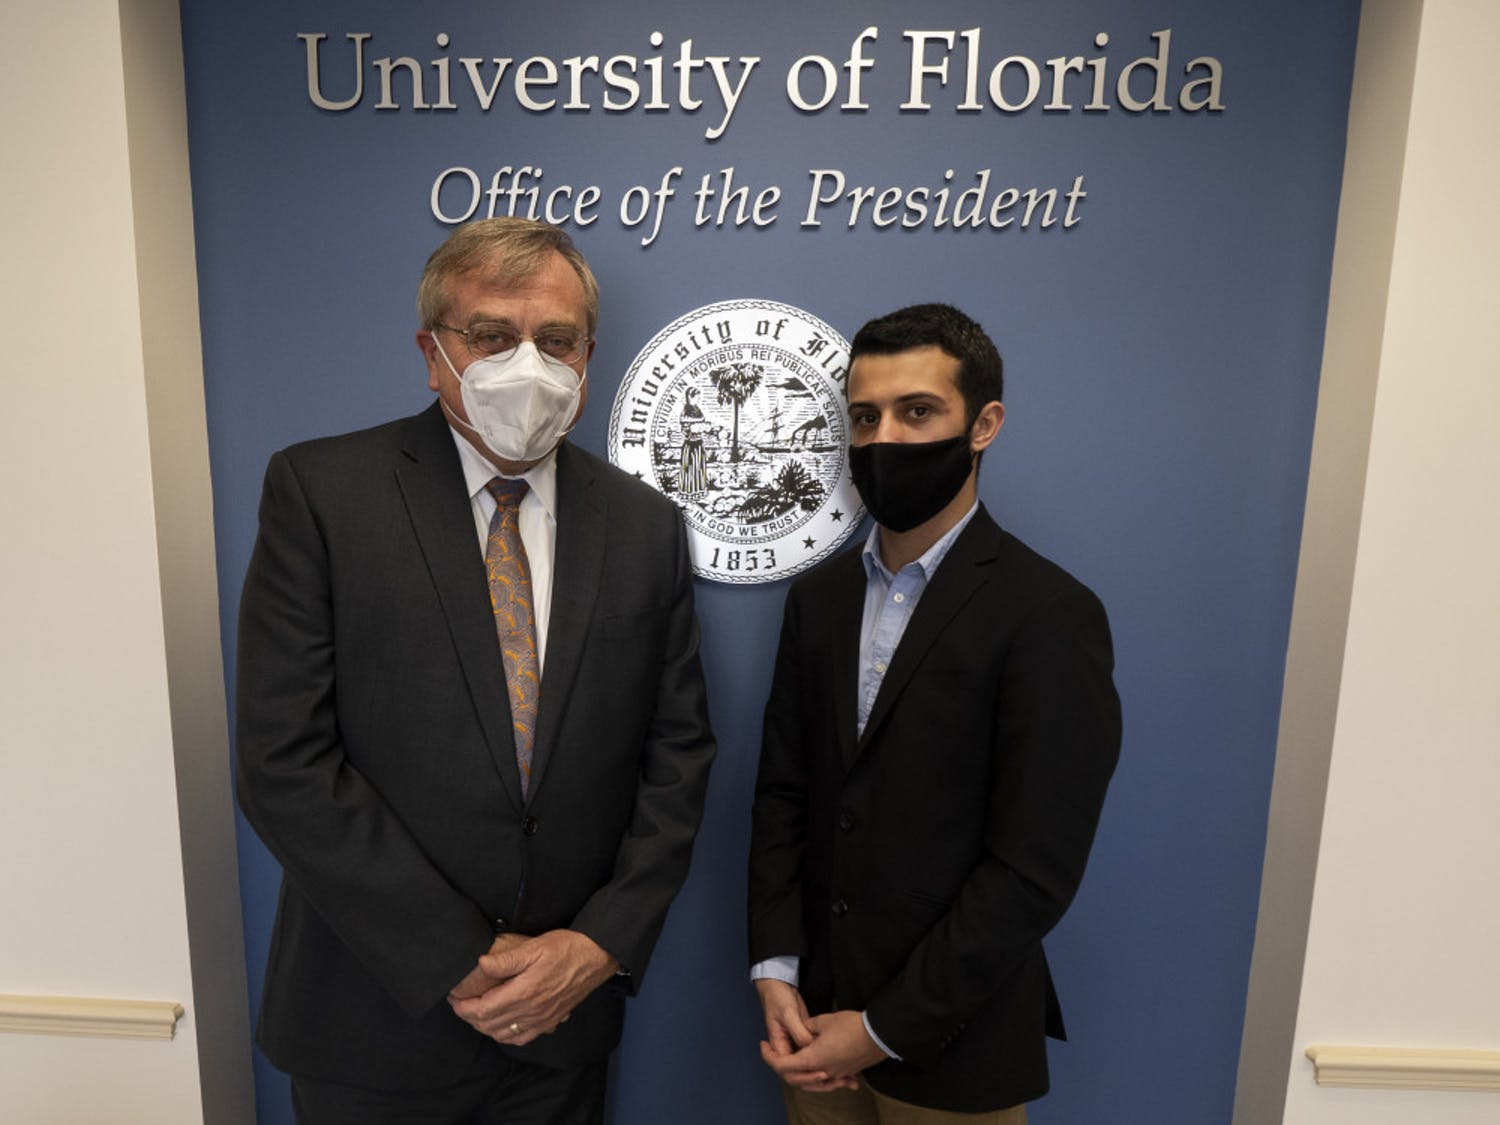 Corbin Bolies, 21, university administration reporter for The Independent Florida Alligator, met for an exclusive interview with UF President Kent Fuchs, 65, on Wednesday.